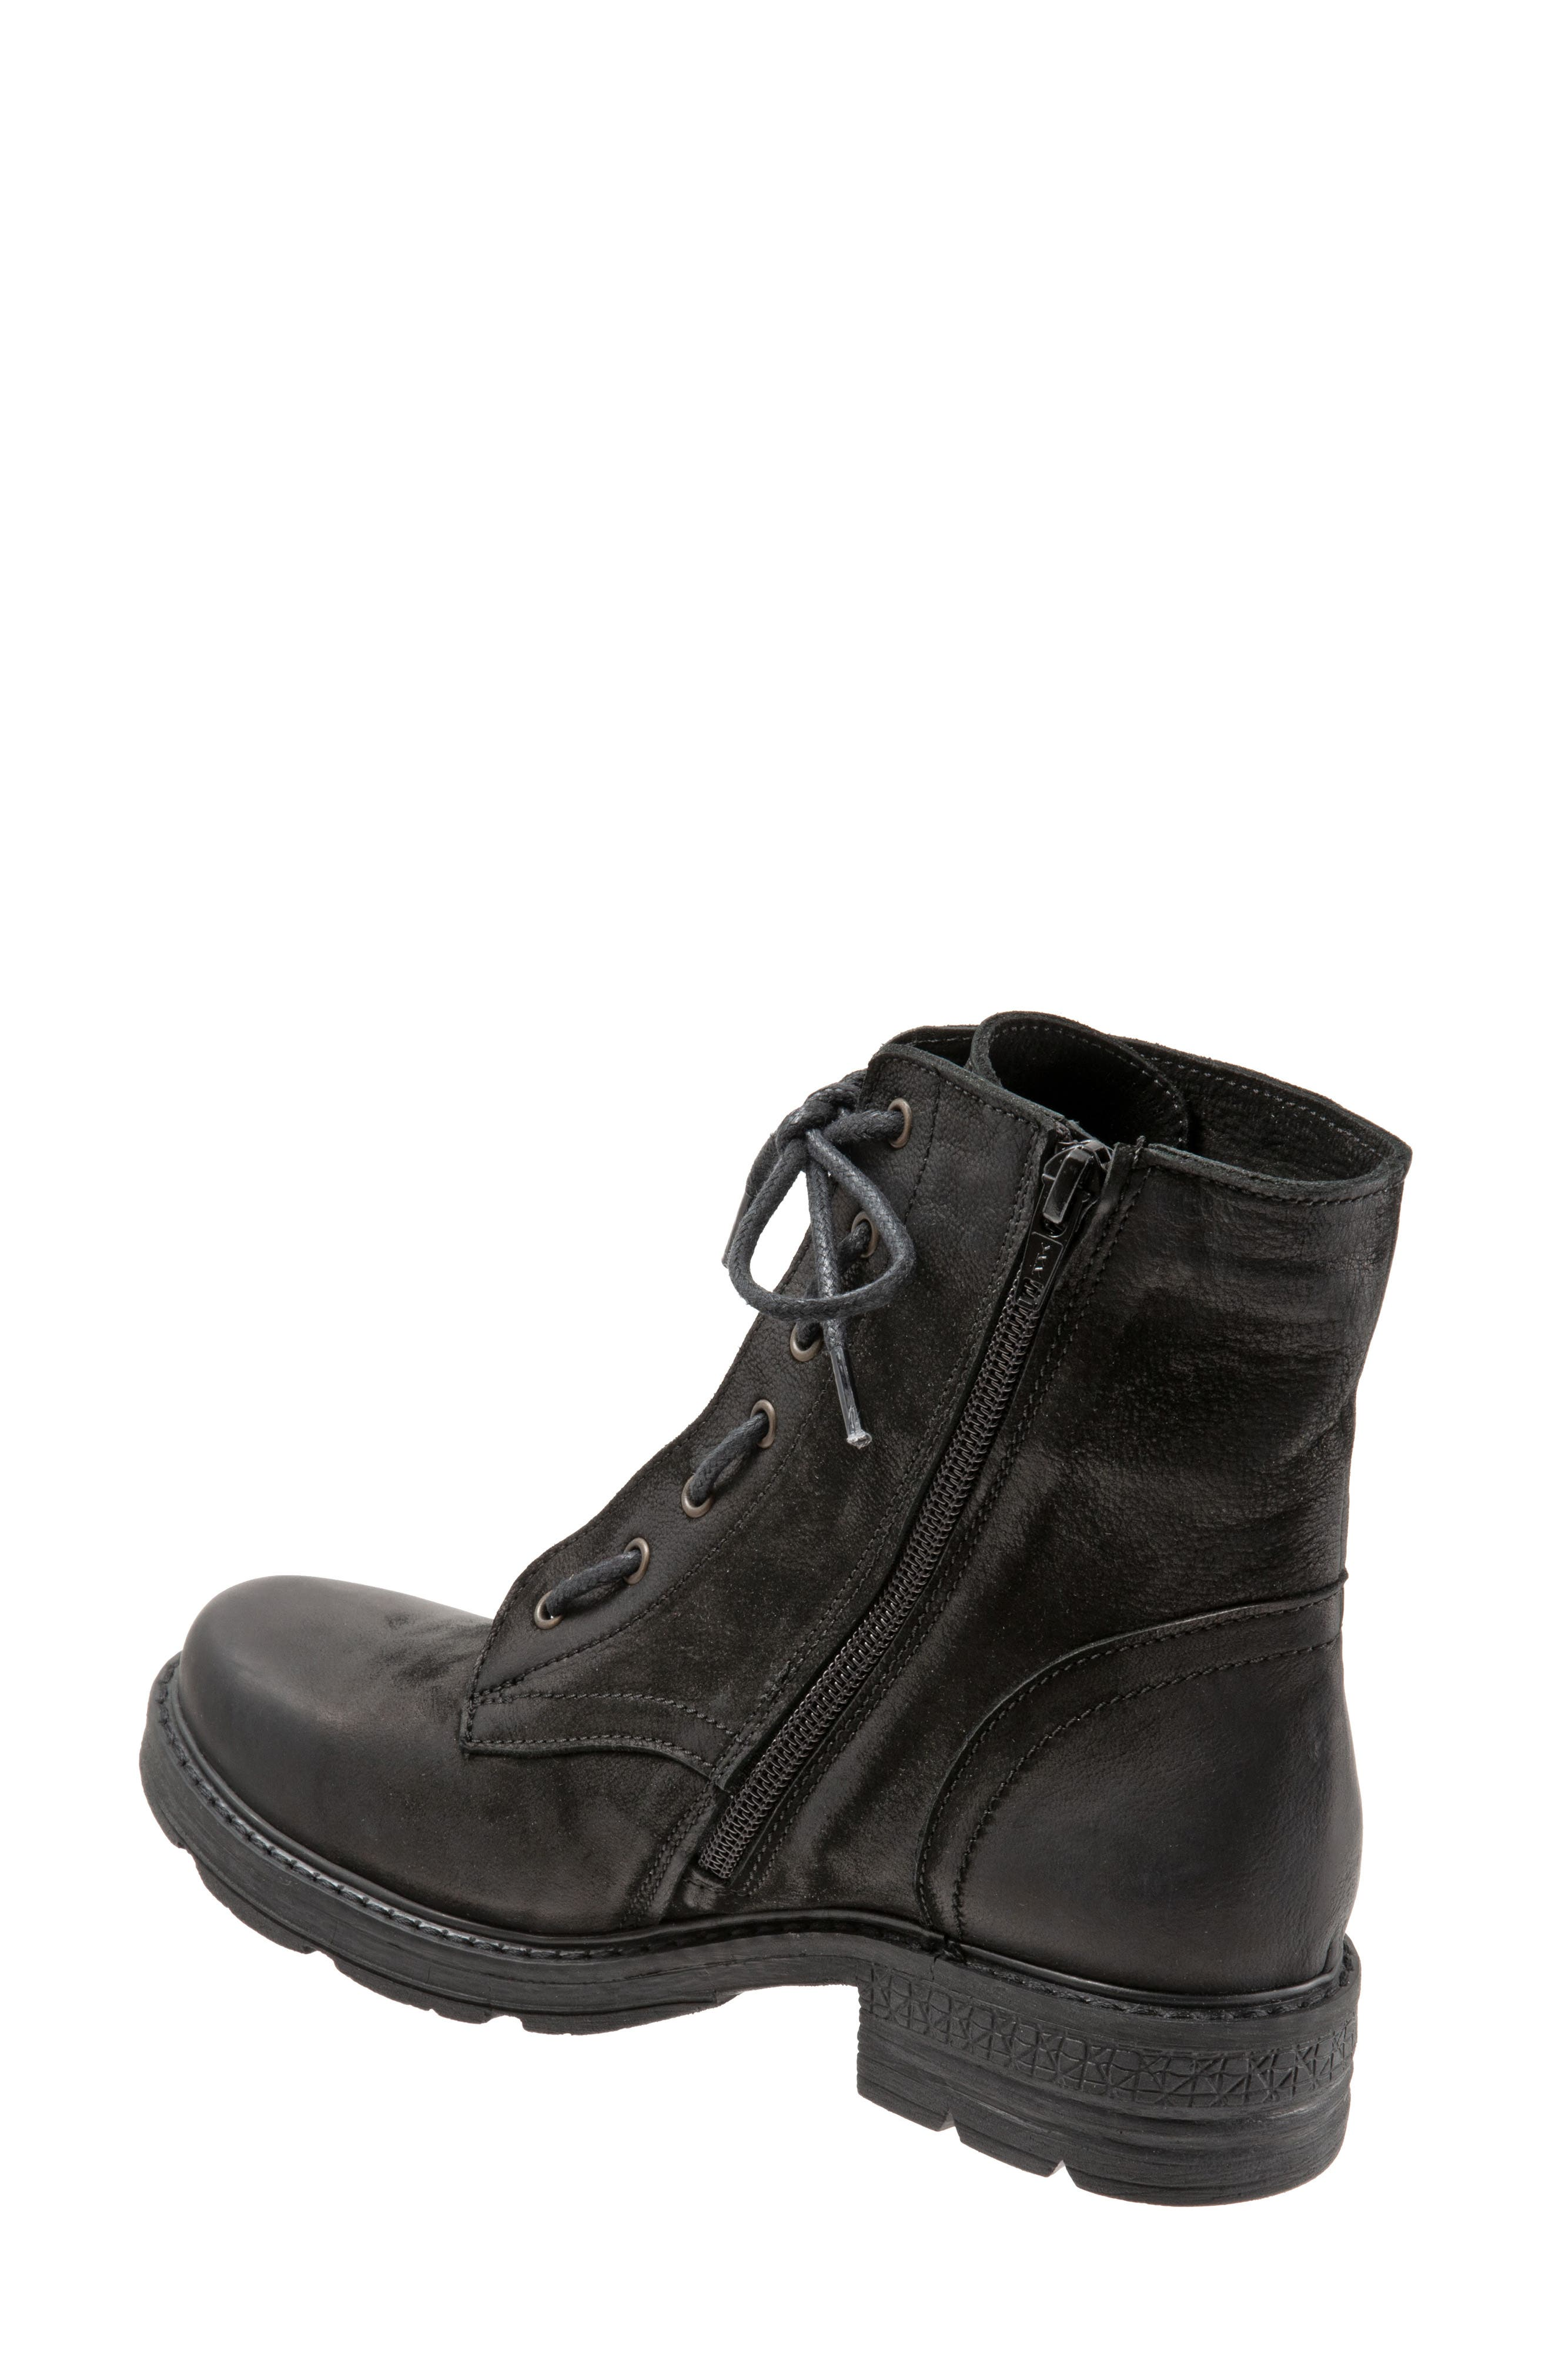 Getty Military Boot,                             Alternate thumbnail 2, color,                             BLACK NATURAL LEATHER